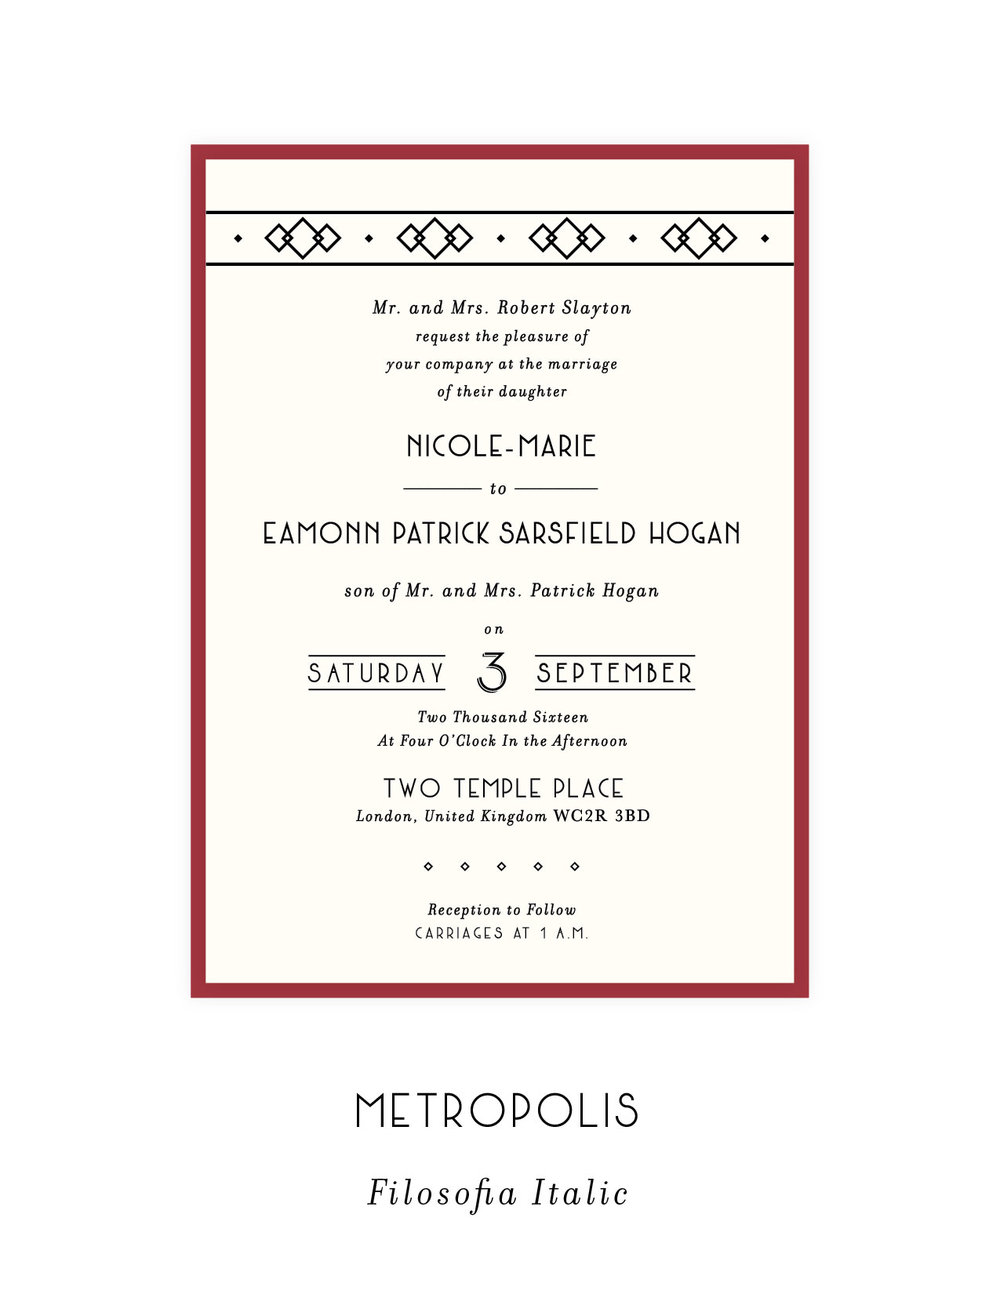 Wedding Fonts_Metropolis.jpg